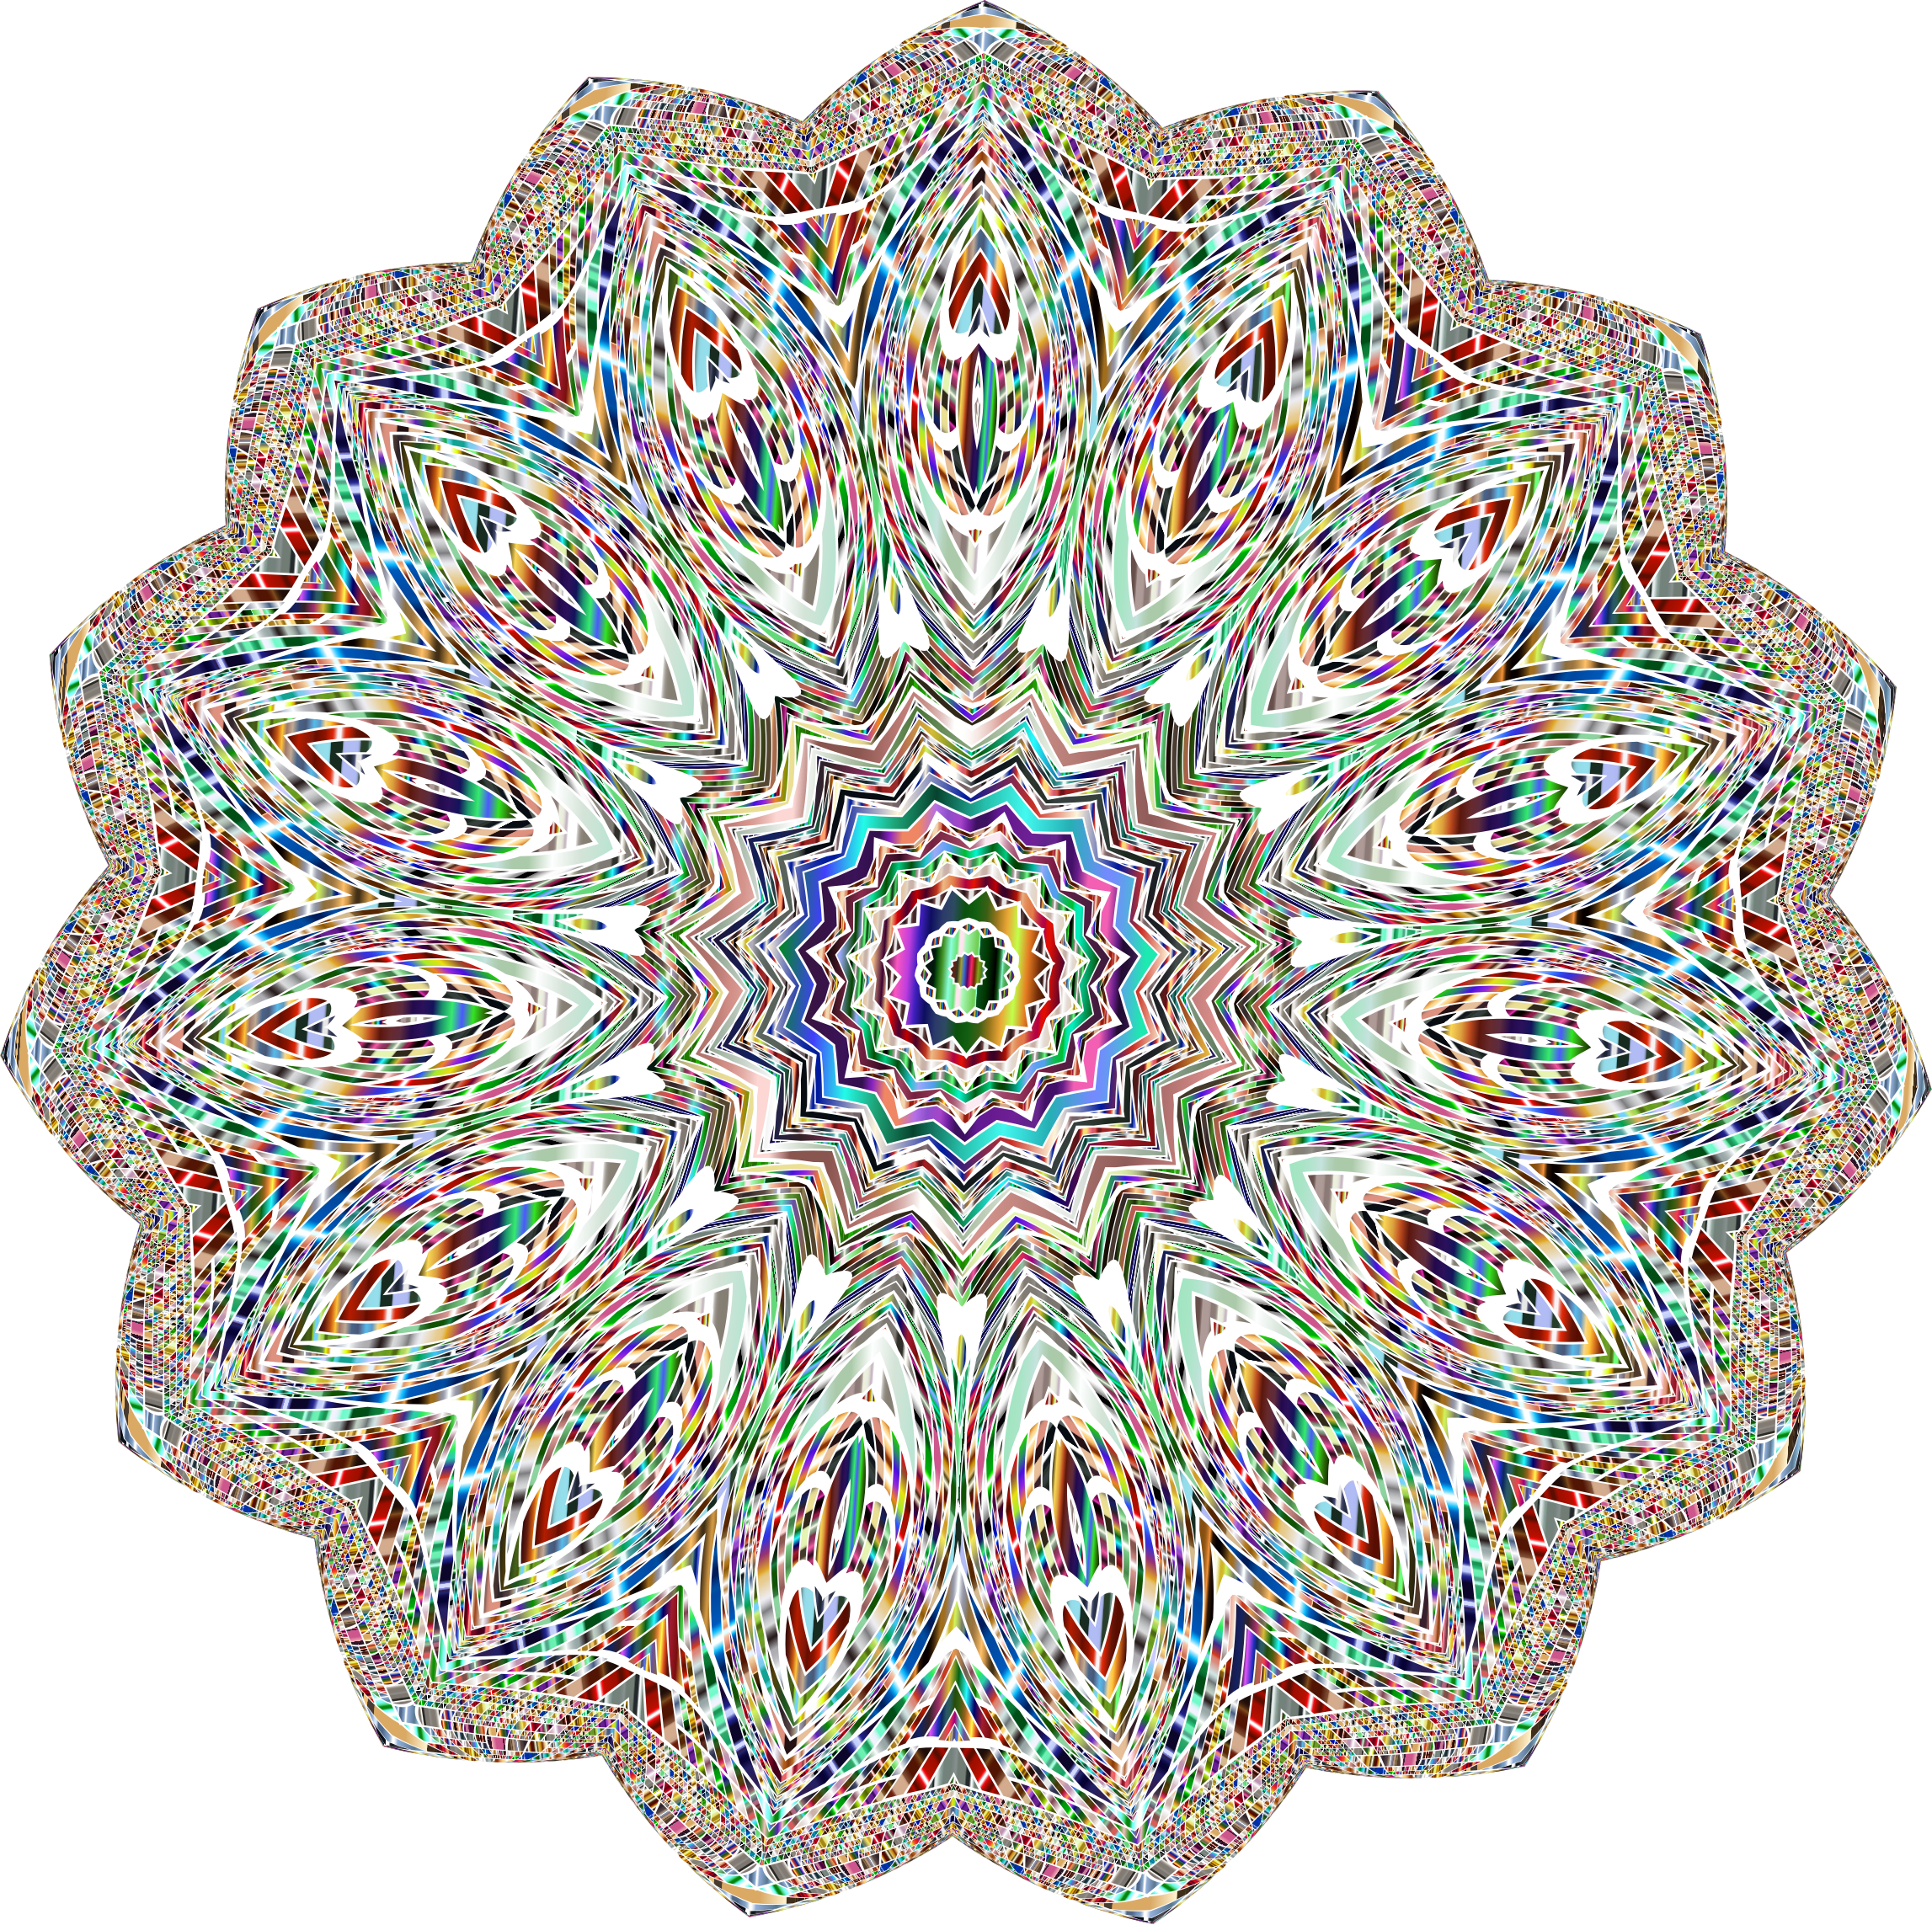 Polished Chromatic Mandala 2 No Background by GDJ